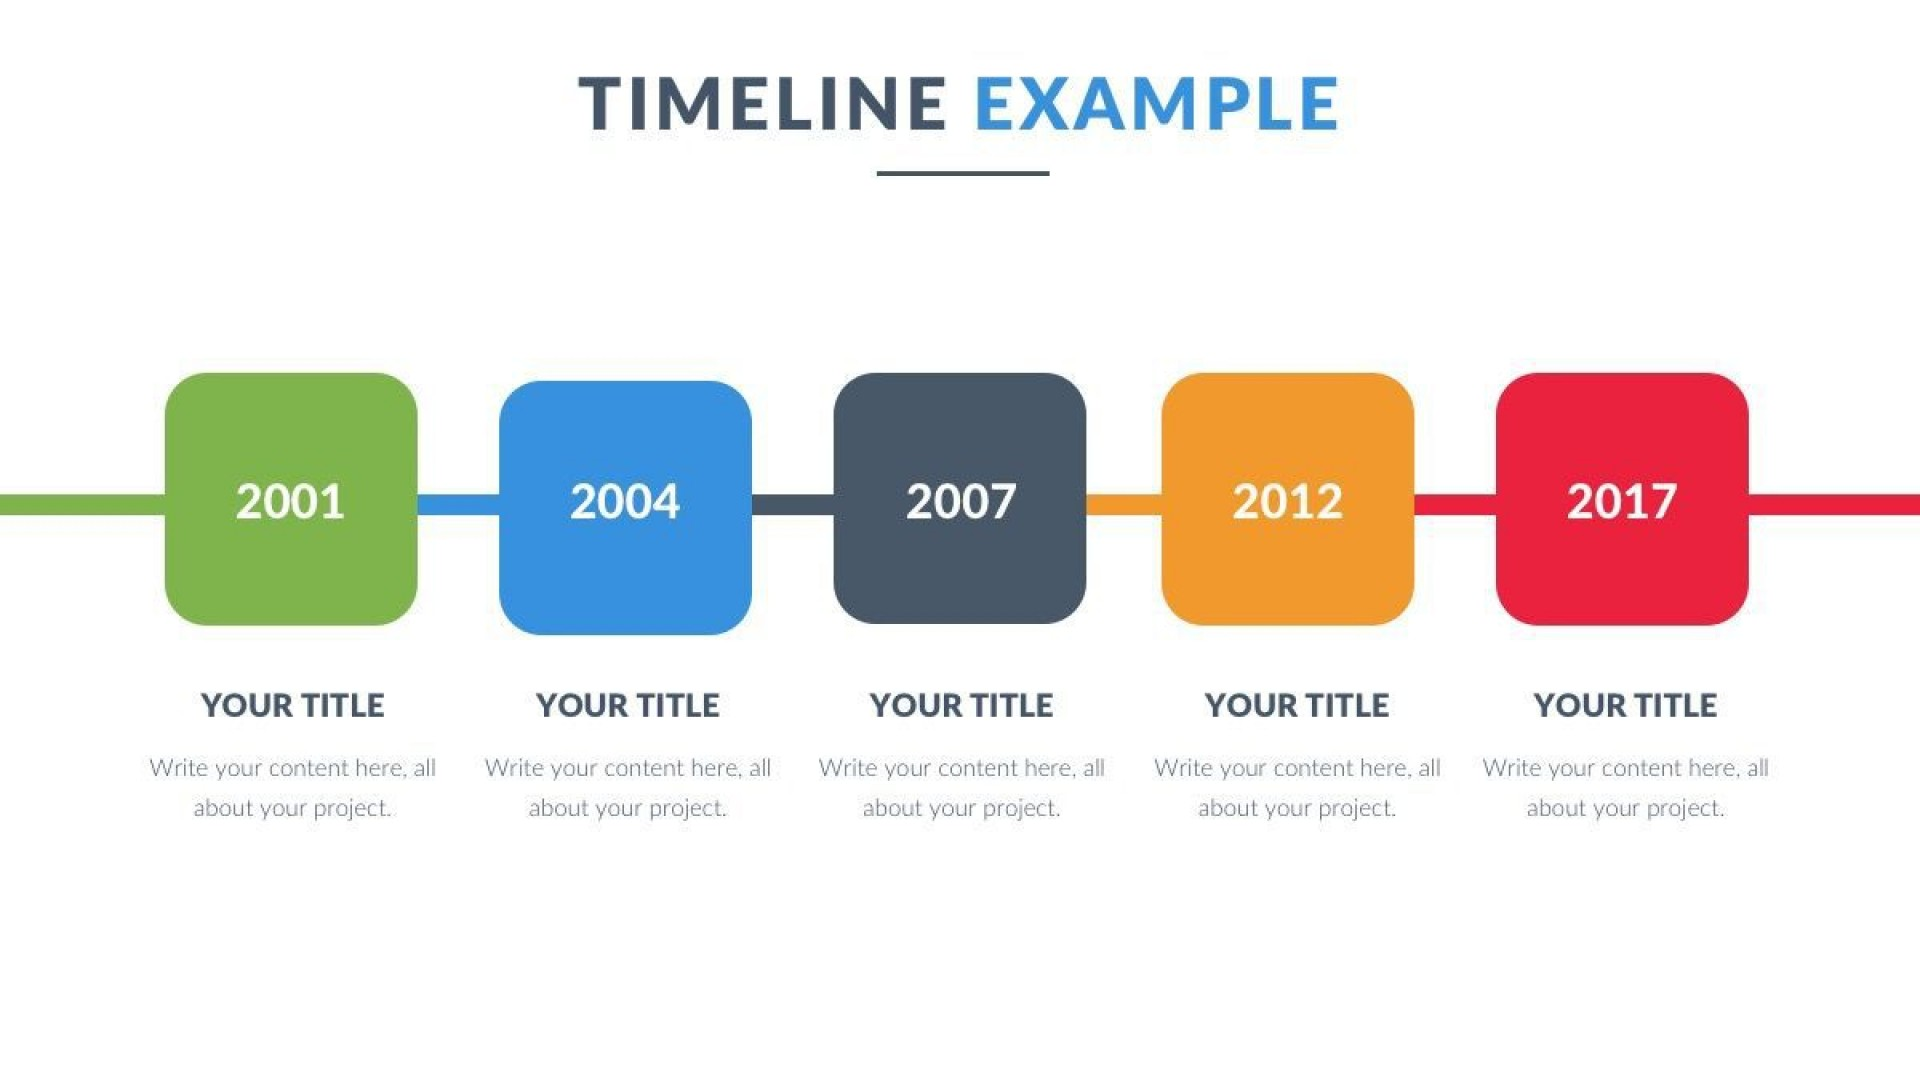 000 Unique Timeline Example Presentation Image  Project Slide Template1920